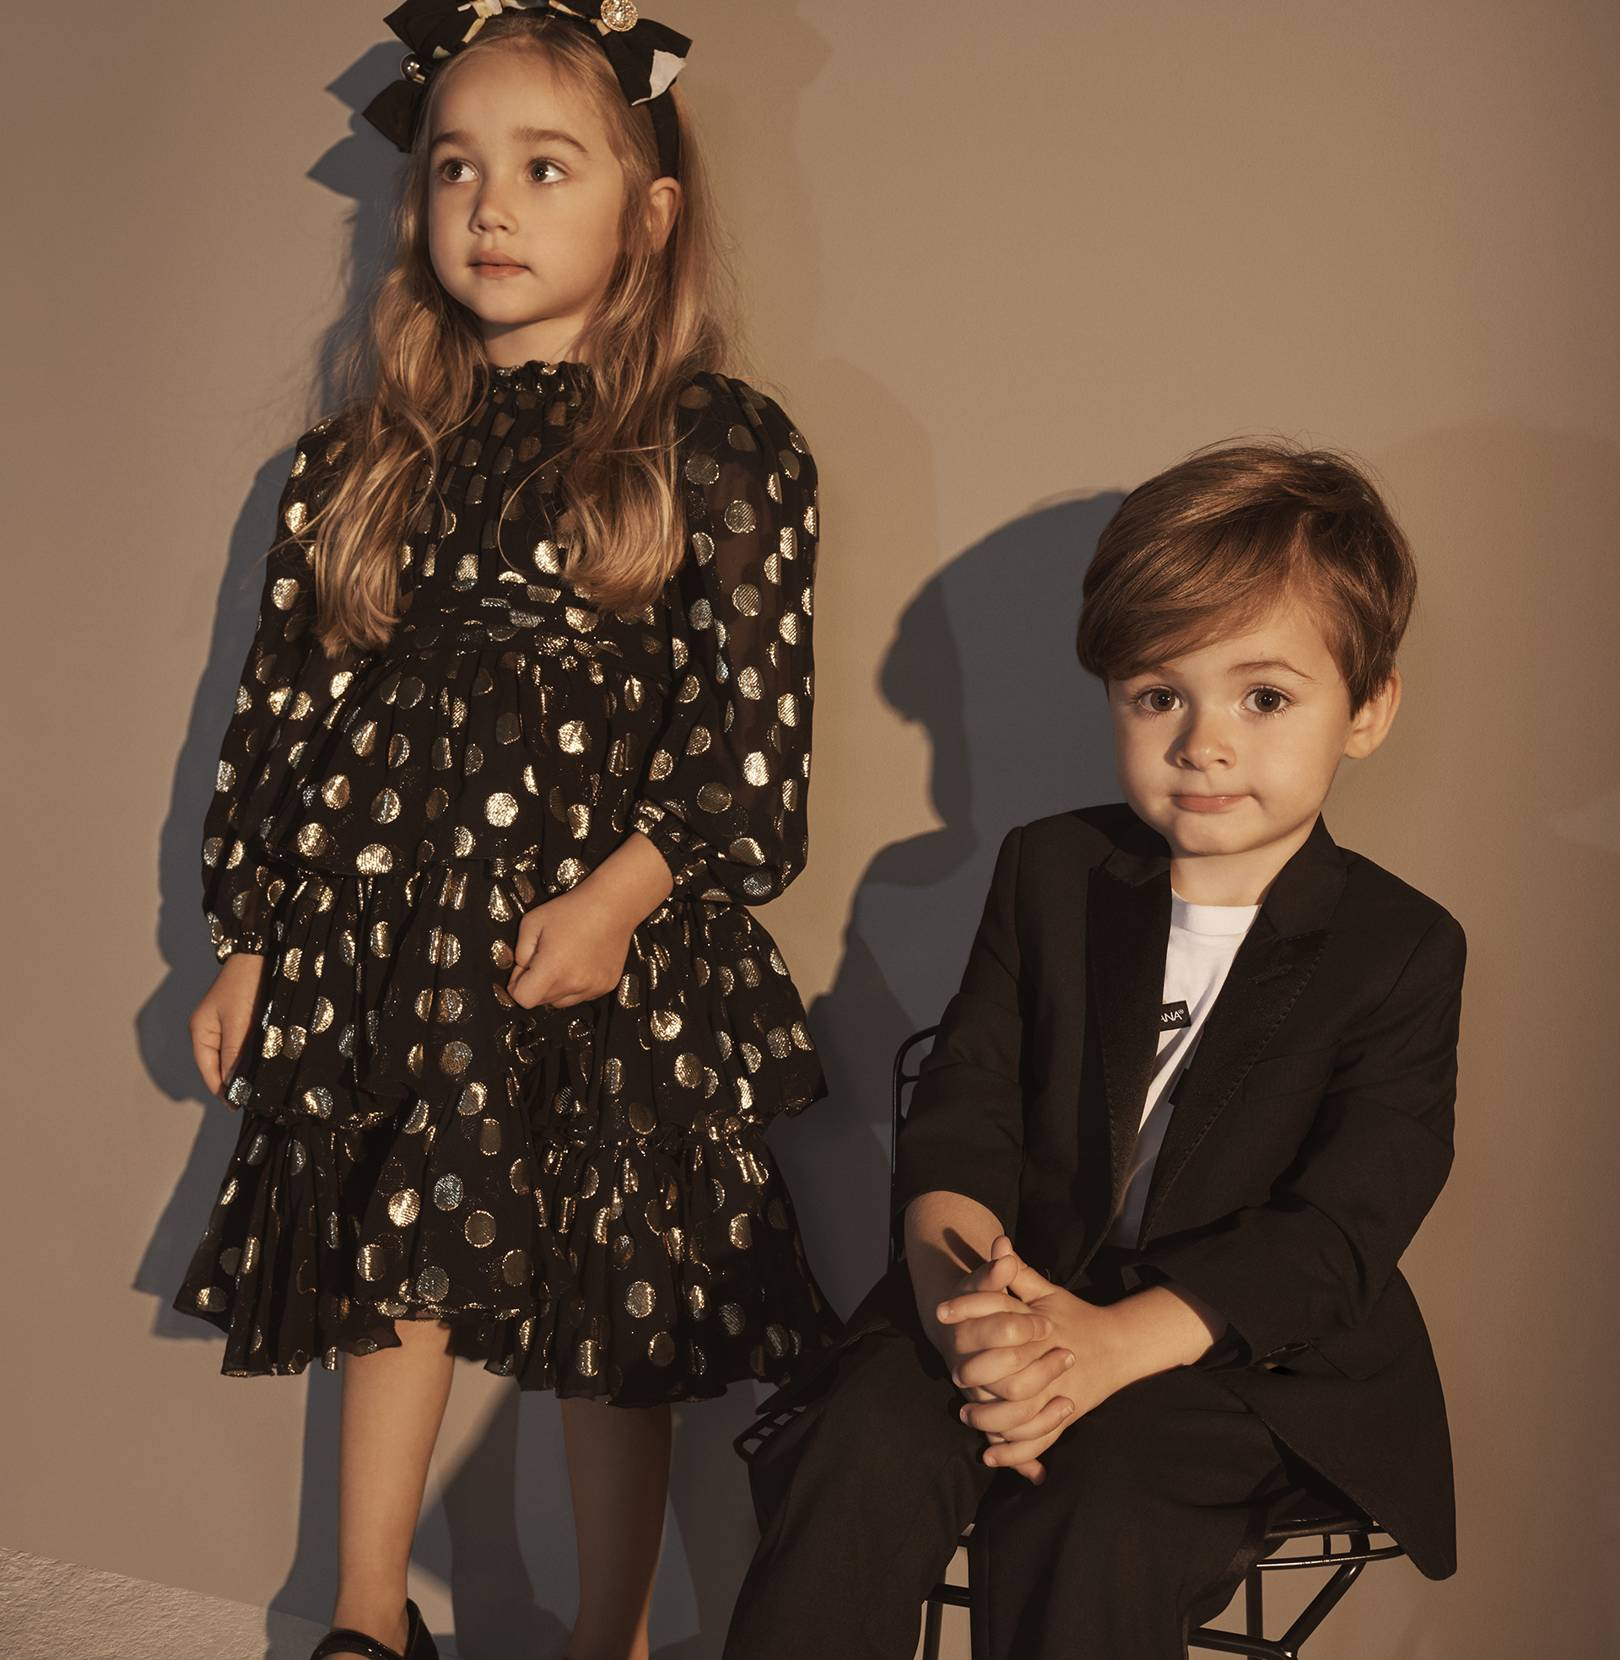 07b1eea43a59 Dolce   Gabbana Launches 56-Piece Kids  Partywear Collection With ...